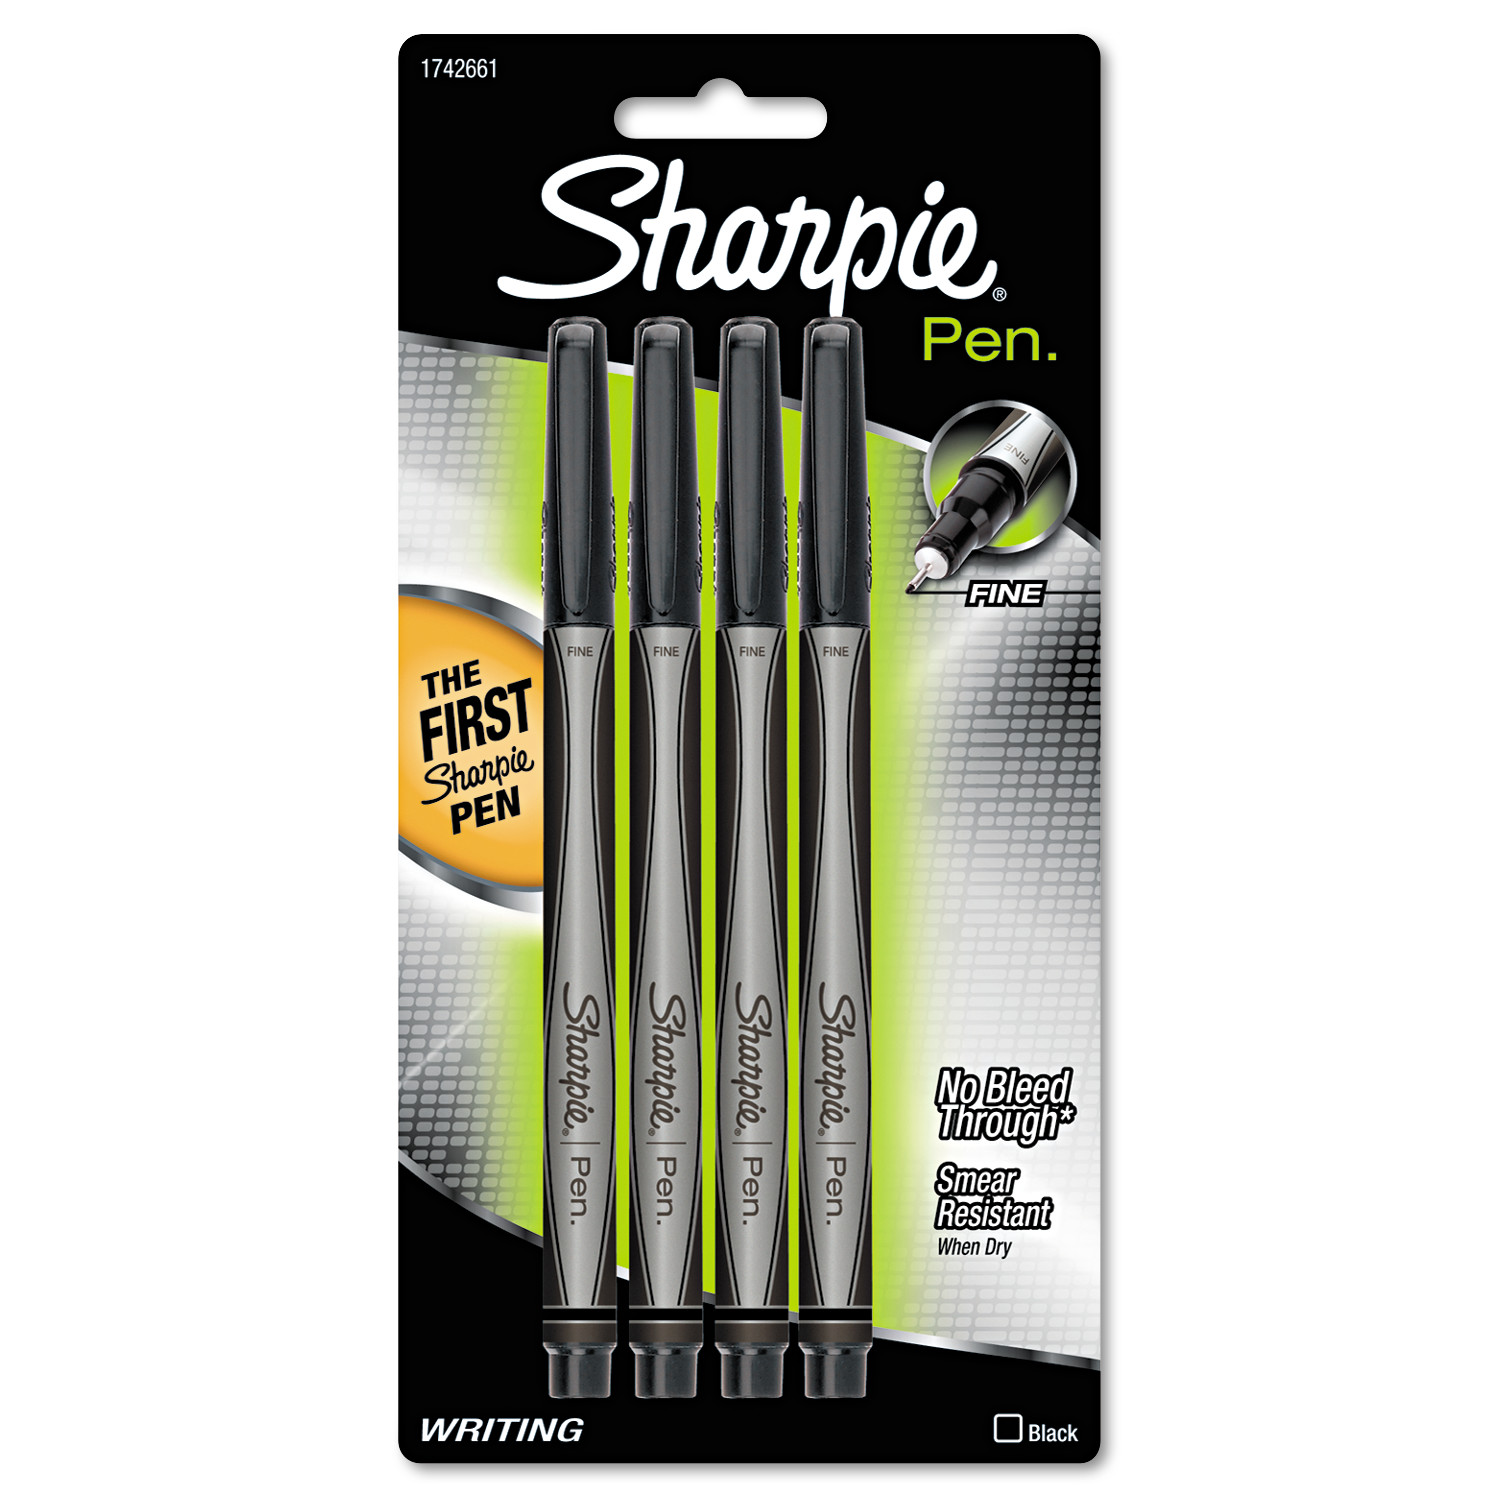 Sharpie Plastic Point Stick Water Resistant Pen, Black Ink, Fine, 4/Pack